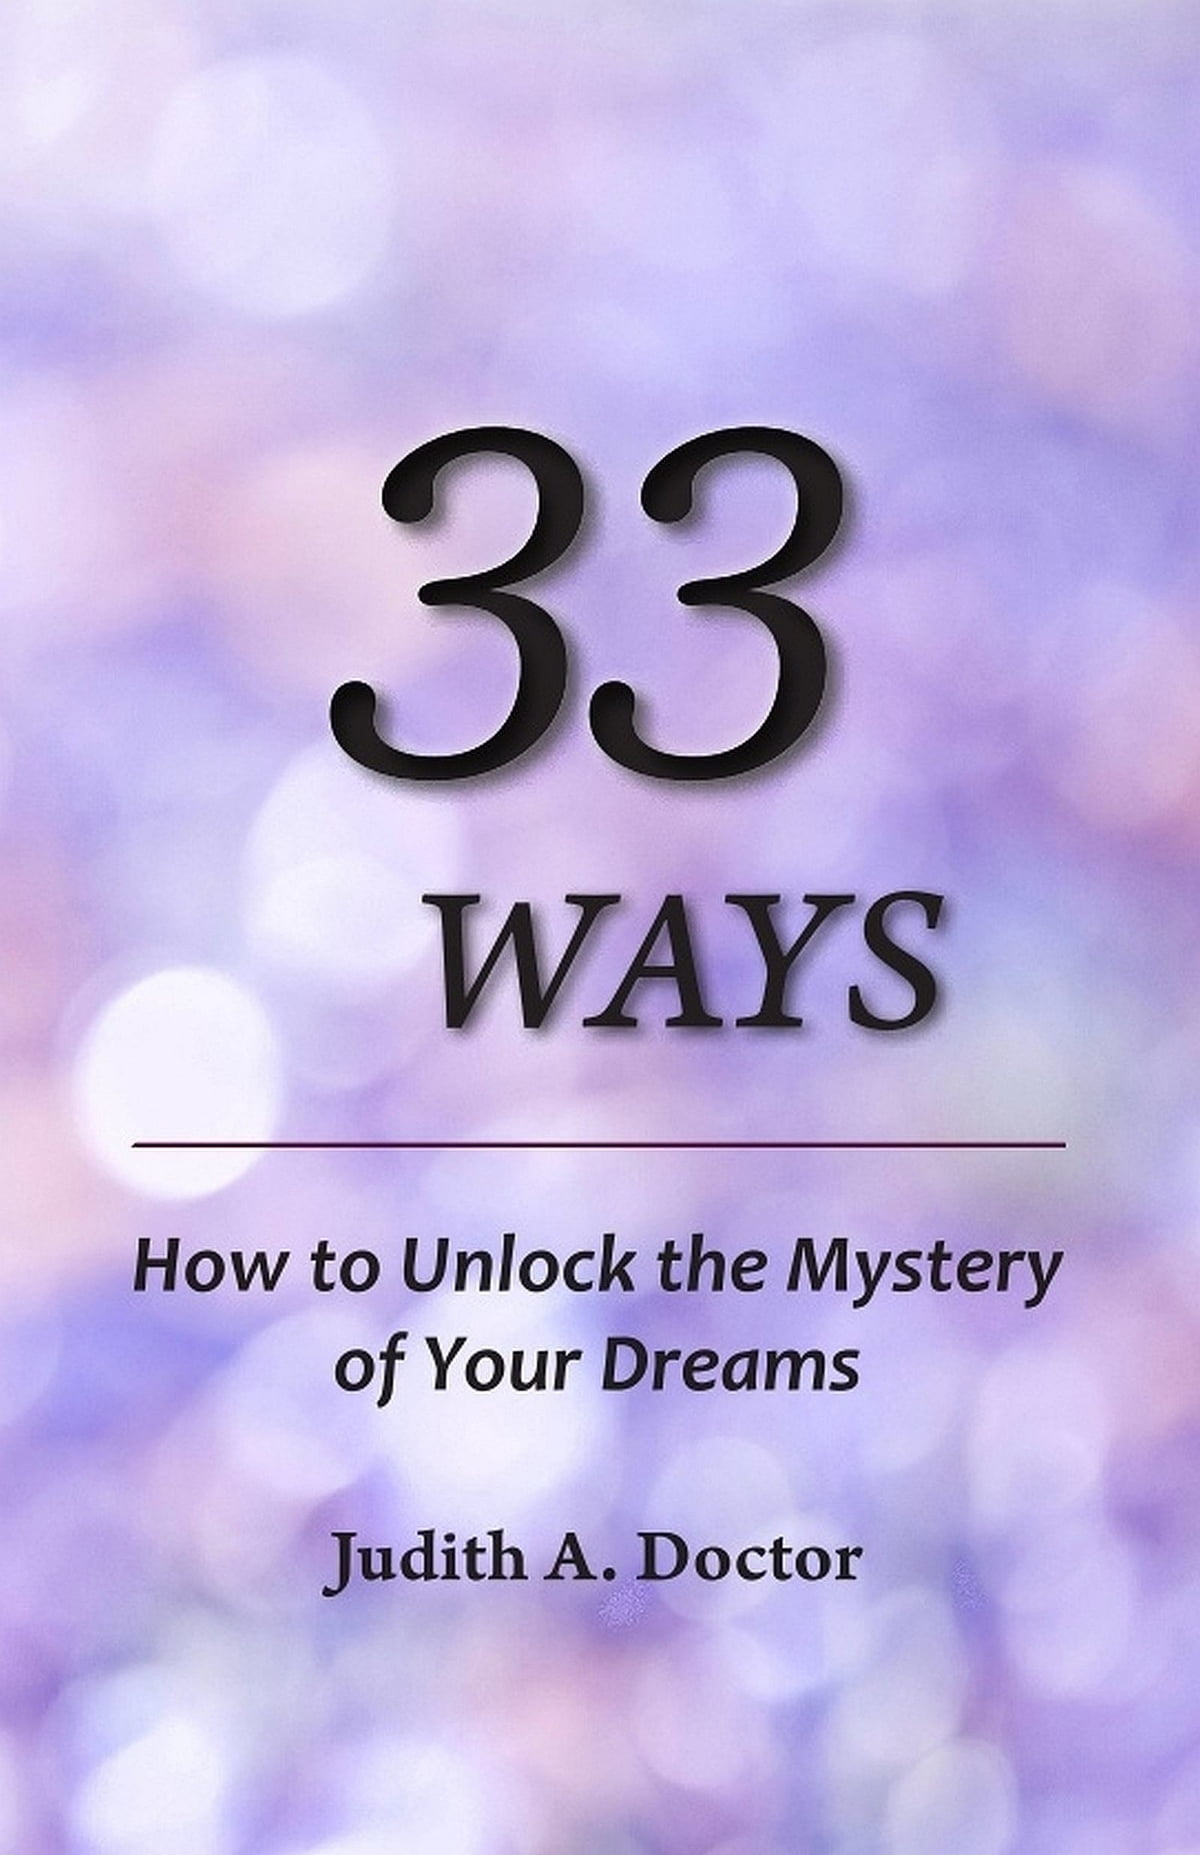 33 Ways: How to Unlock the Mystery of Your Dreams ebook by Judith Doctor -  Rakuten Kobo